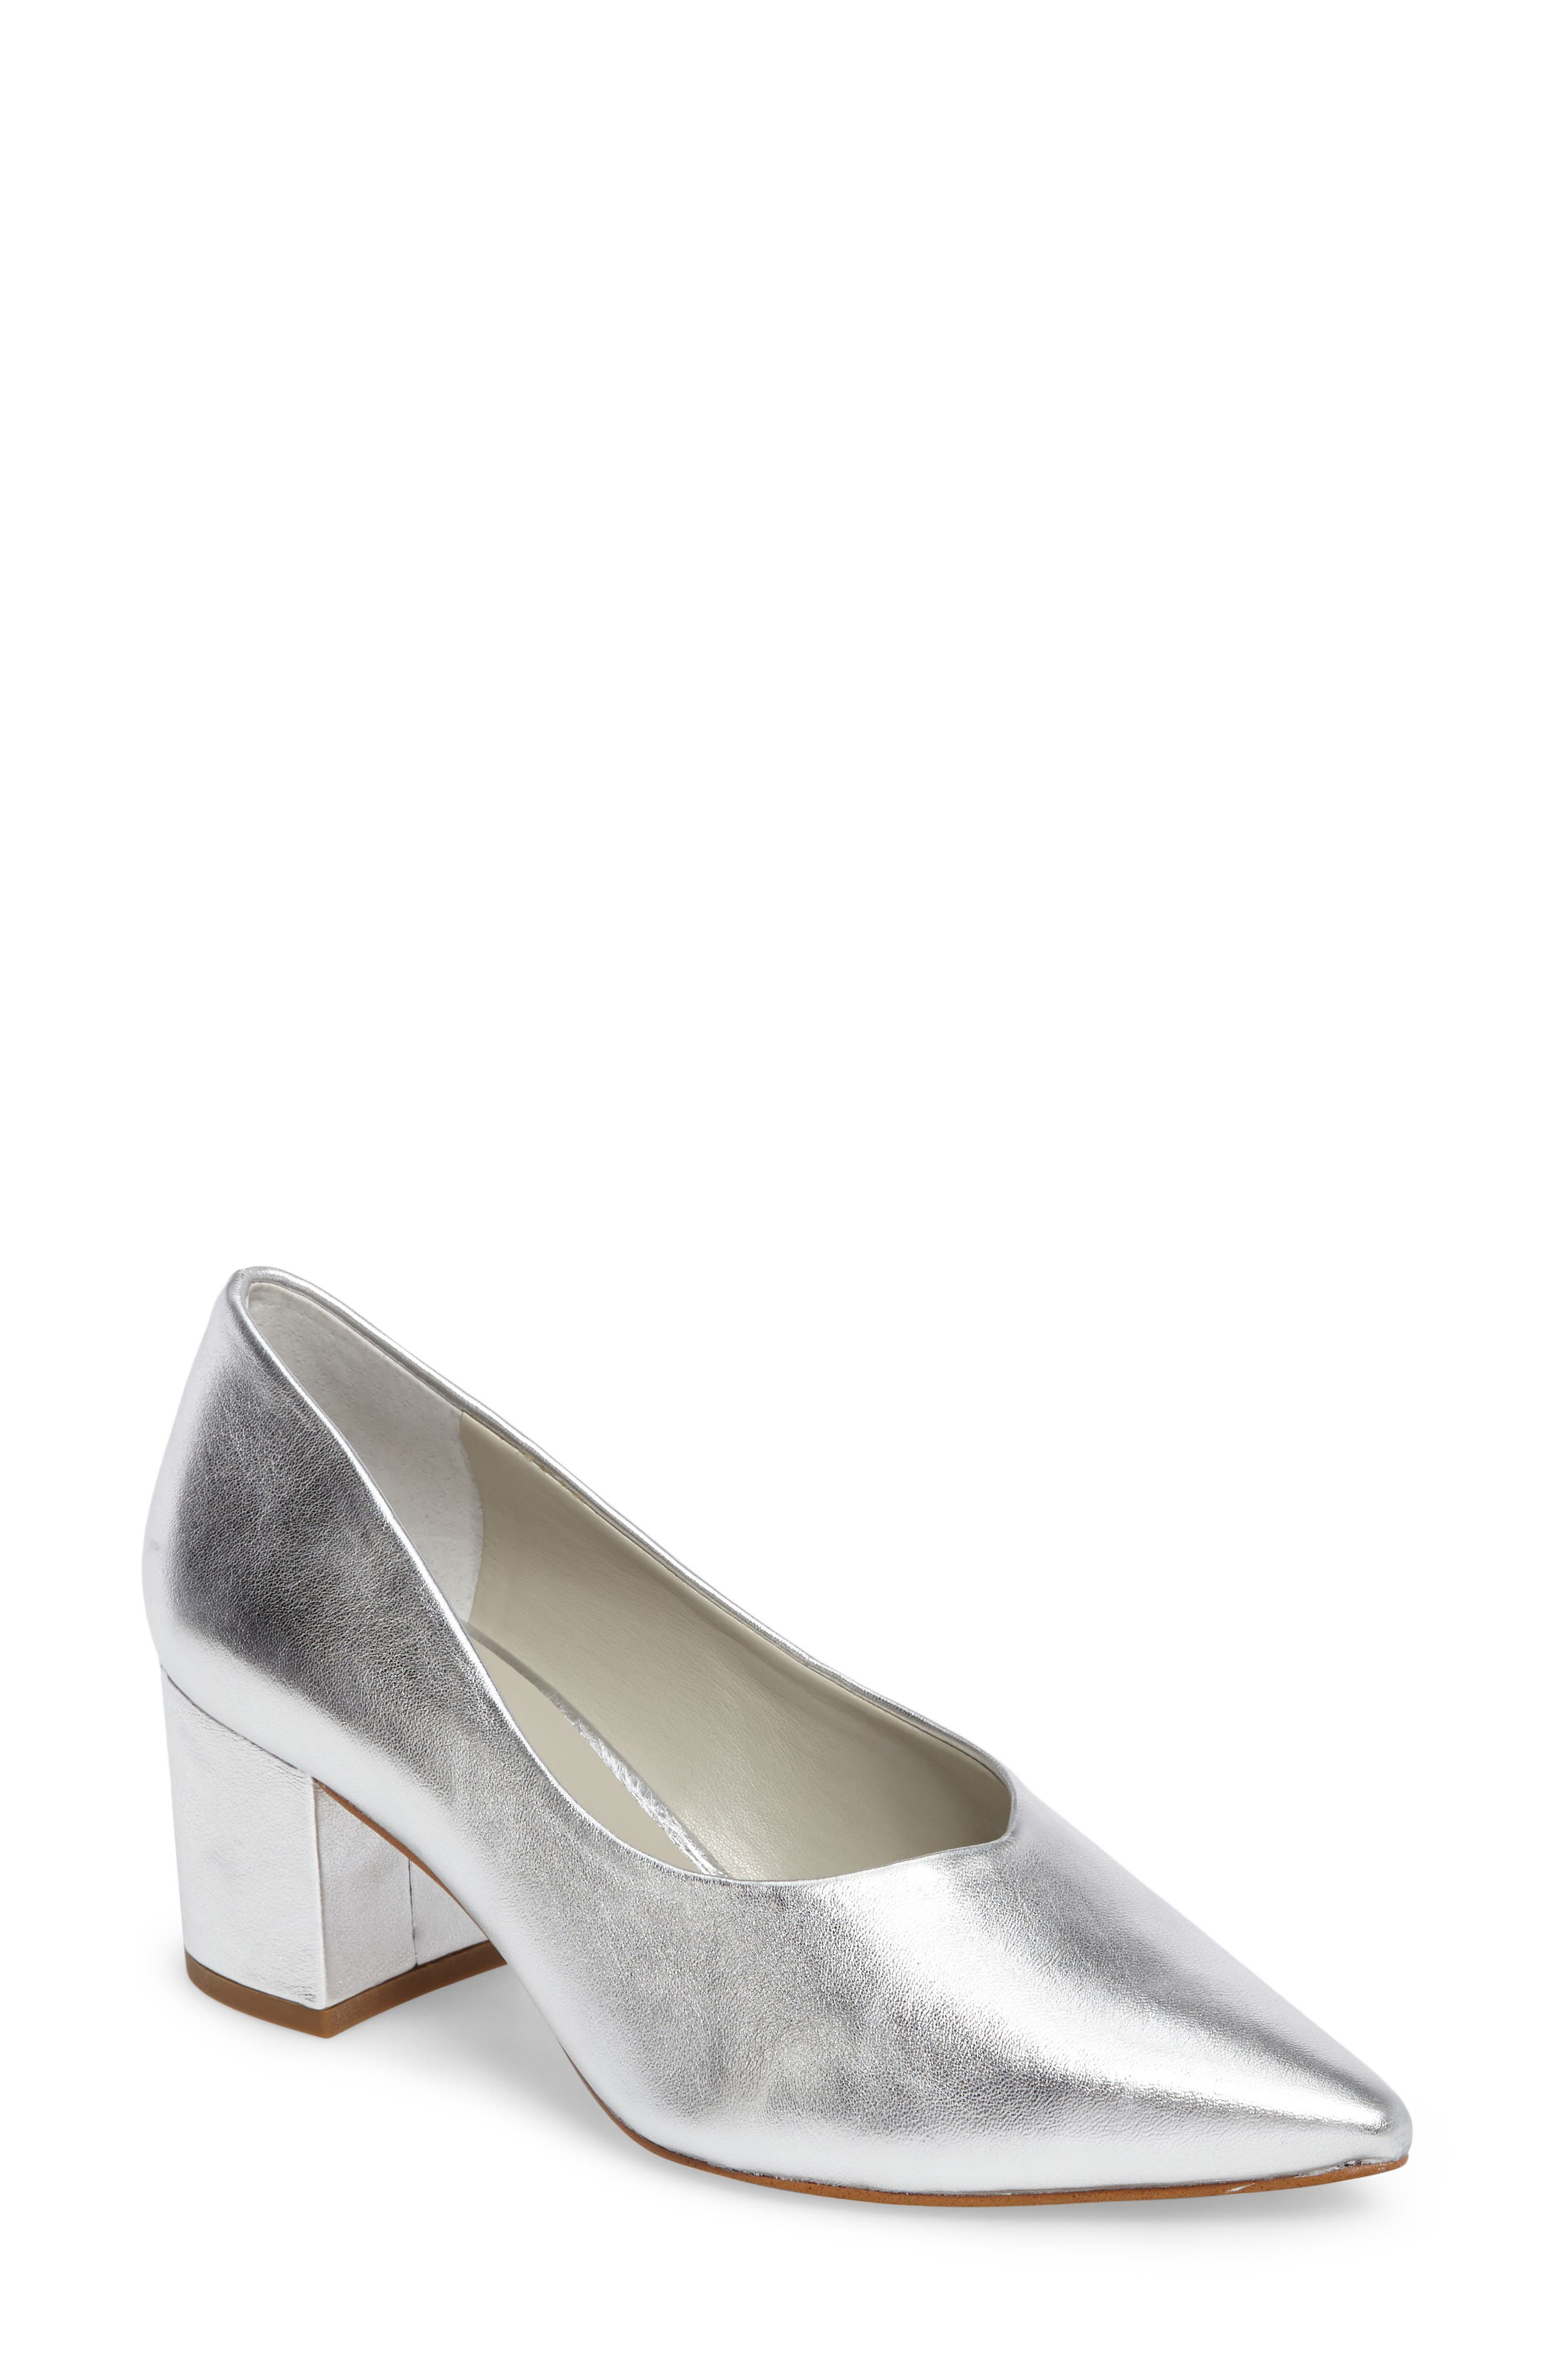 Main Image - 1.STATE Jact Pointy Toe Pump (Women)